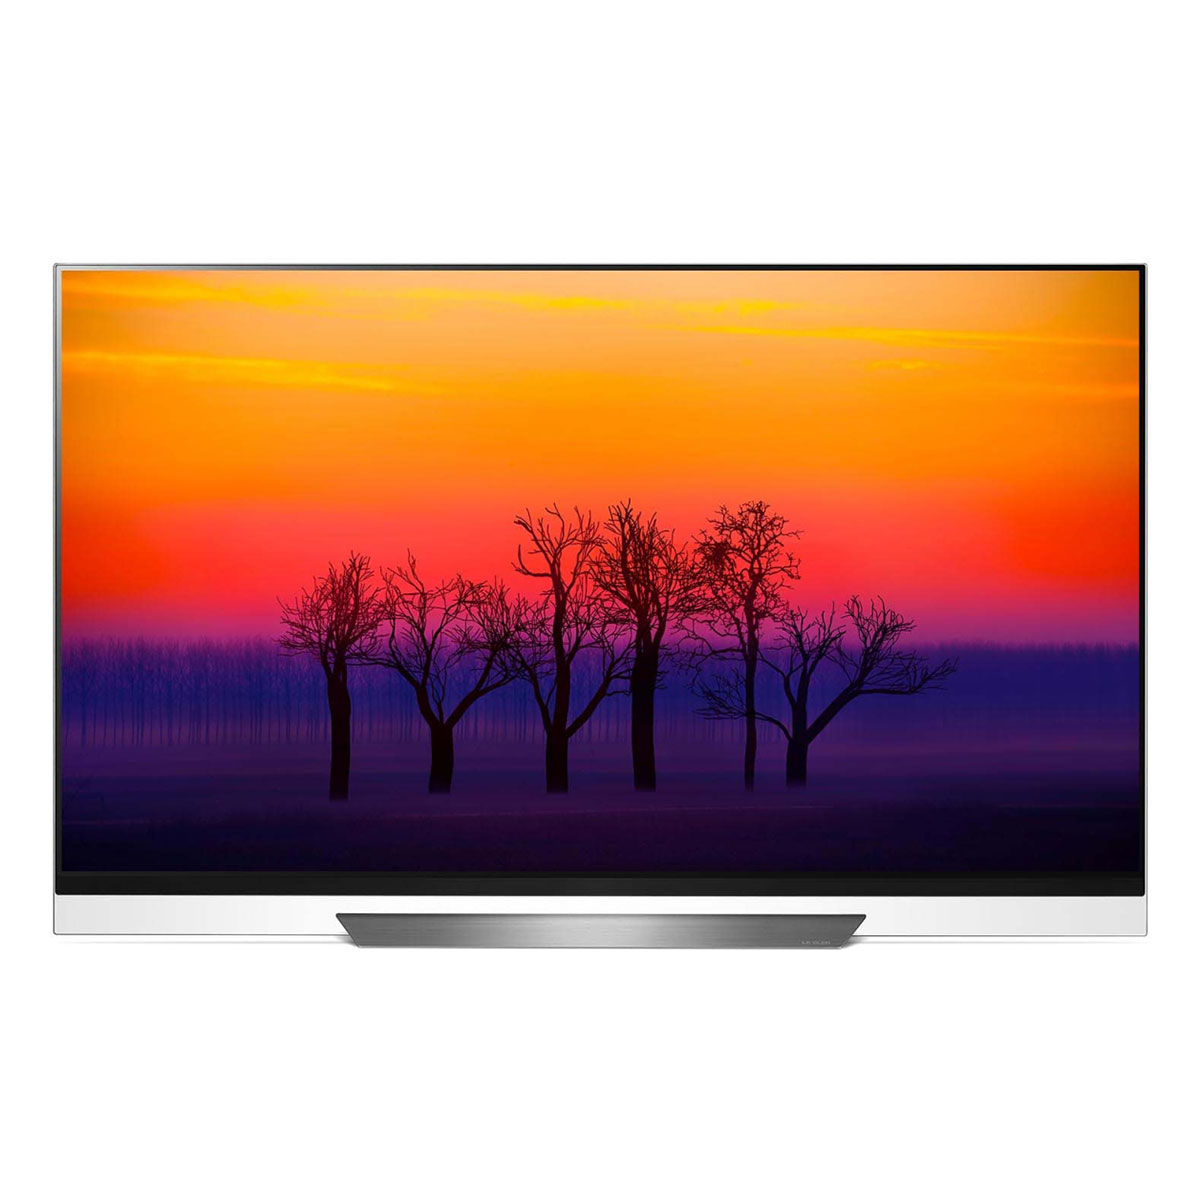 "TV LG OLED65E8 Téléviseur OLED 4K 65"" (165 cm) 16/9 - 3840 x 2160 pixels - Ultra HD 2160p - HDR - Wi-Fi - Bluetooth - Dolby Atmos (dalle native 100 Hz)"